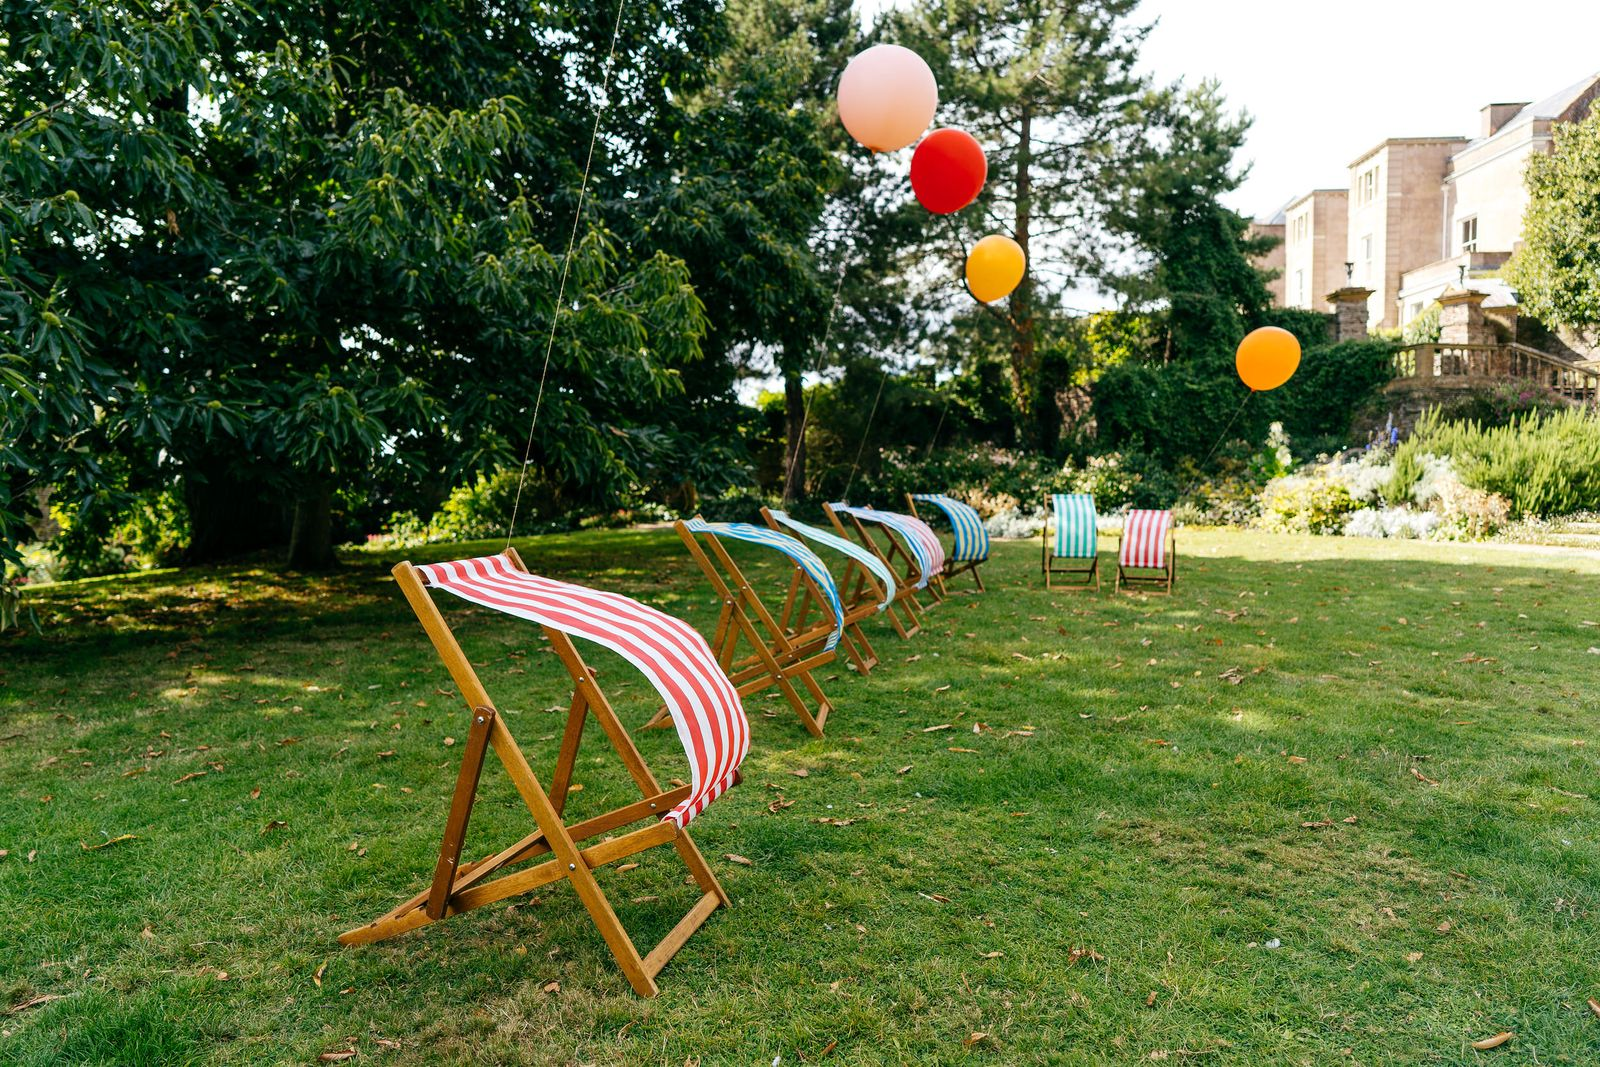 Deck chairs and balloons for outdoor entertainment at this Somerset wedding